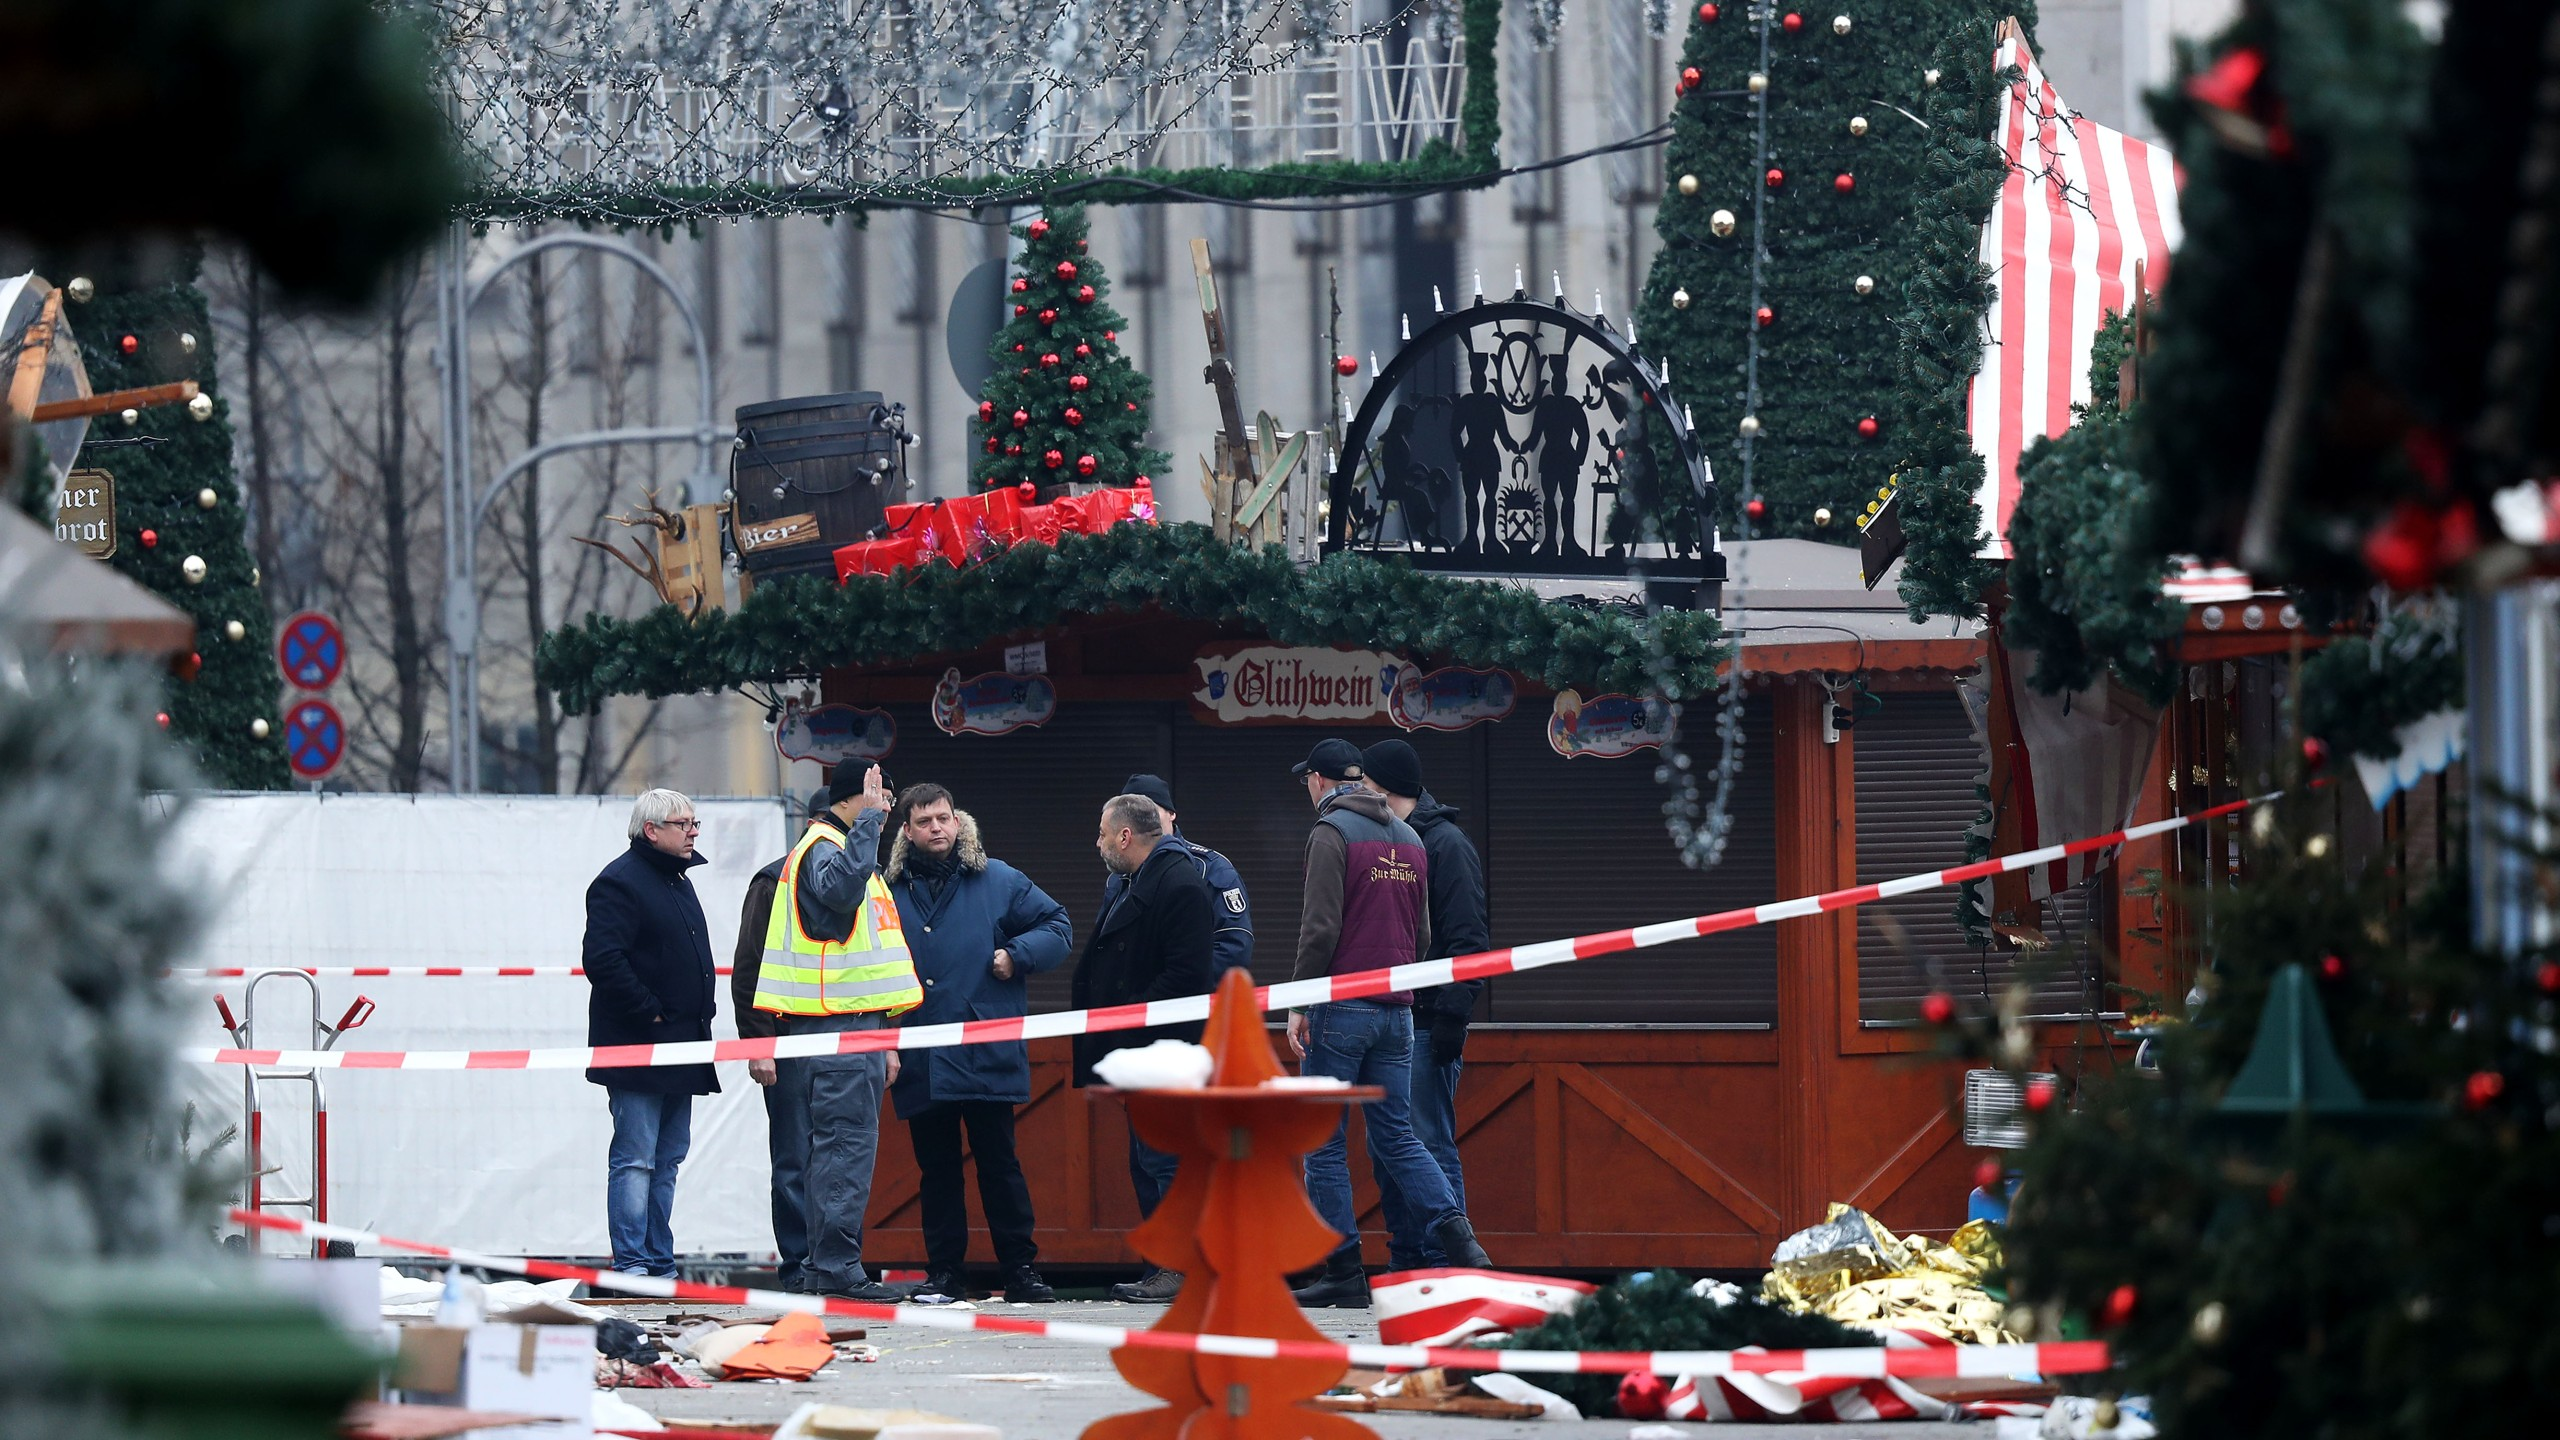 Workers are seen at a Berlin Christmas market on Dec. 20, 2016, a day after a truck plowed through a crowd, killing at least 12. (Sean Gallup/Getty Images)